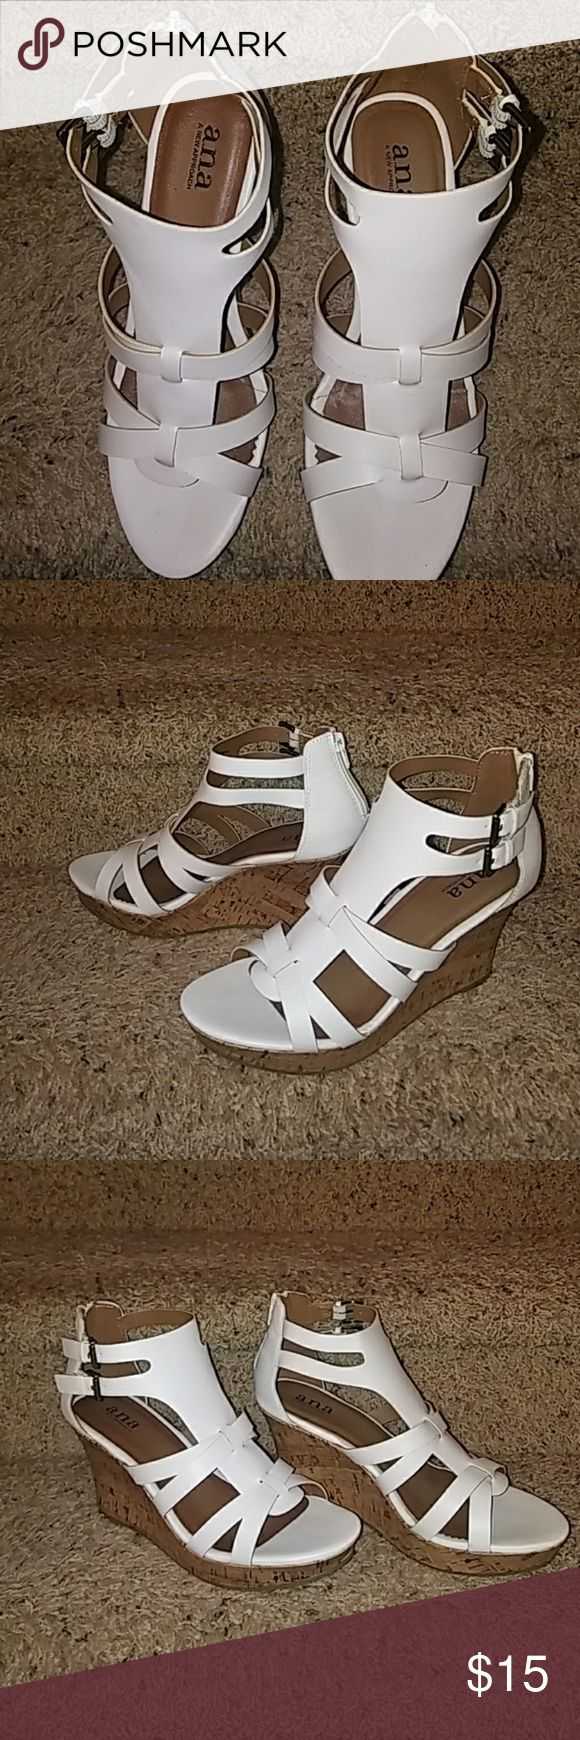 """NWOT- white wedge sandals NWOT- white wedge sandals. Never worn. Wedge is 3 3/4"""" high. a.n.a Shoes Wedges"""